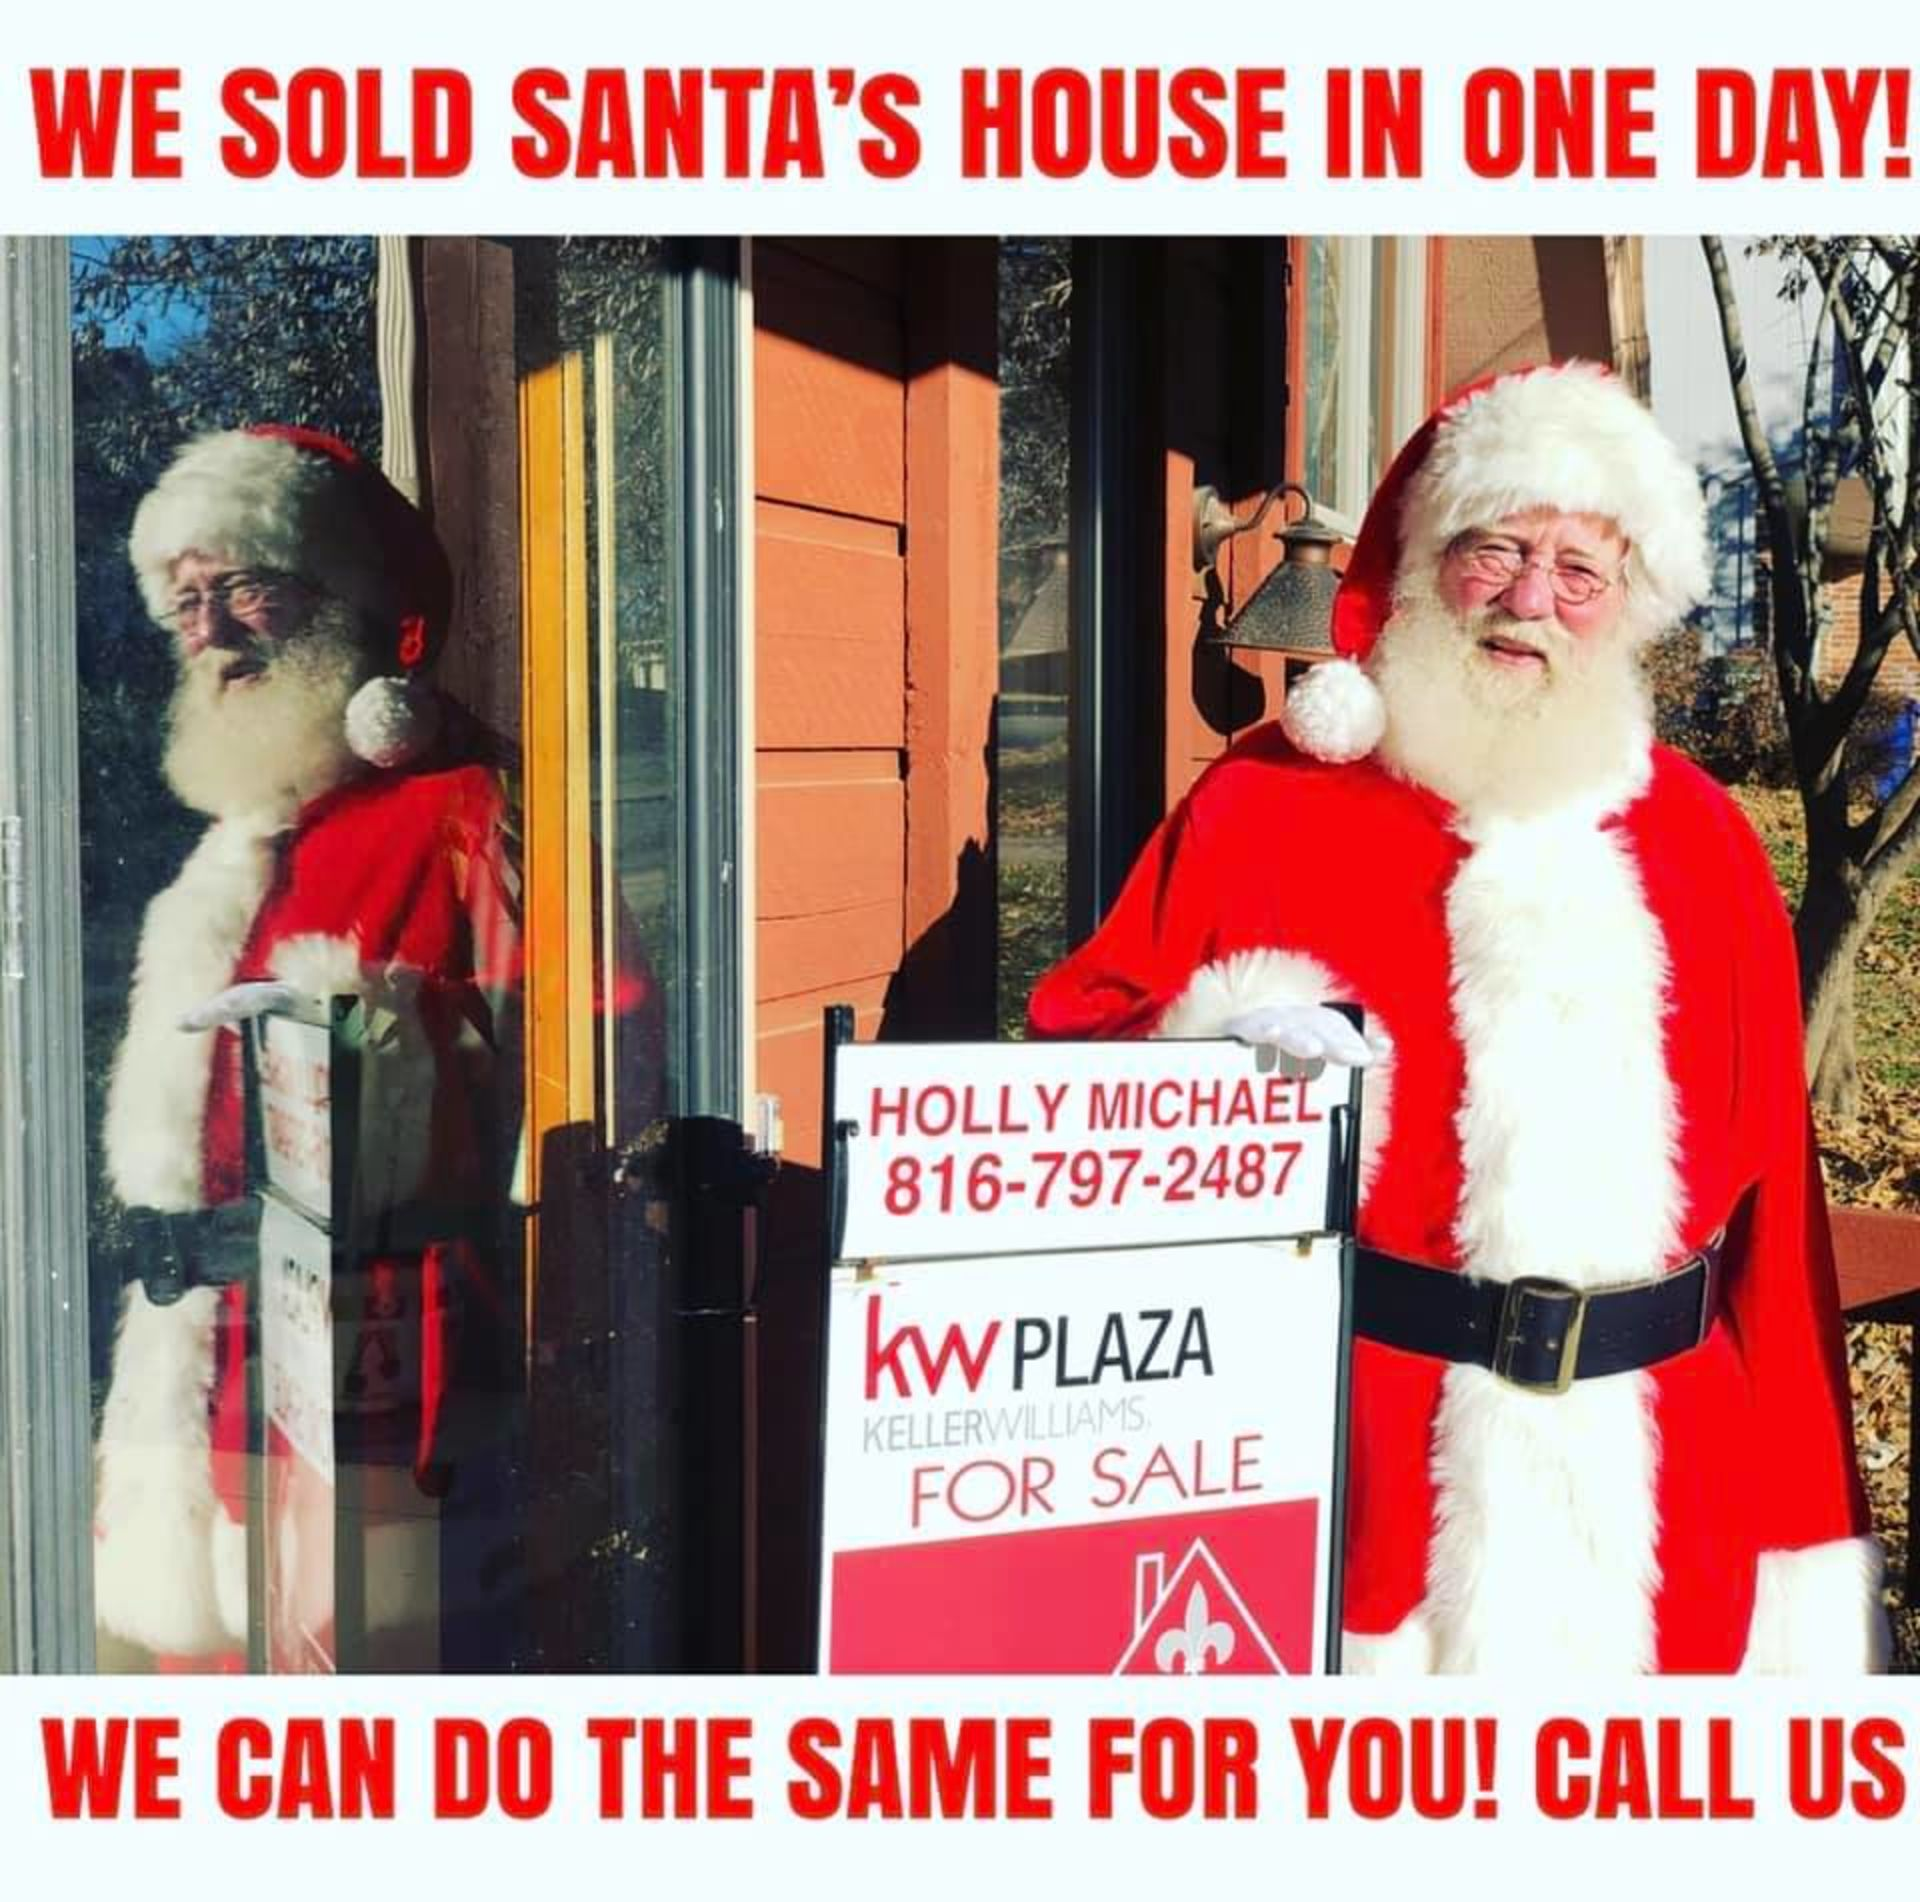 SANTAS HOUSE SOLD IN A DAY